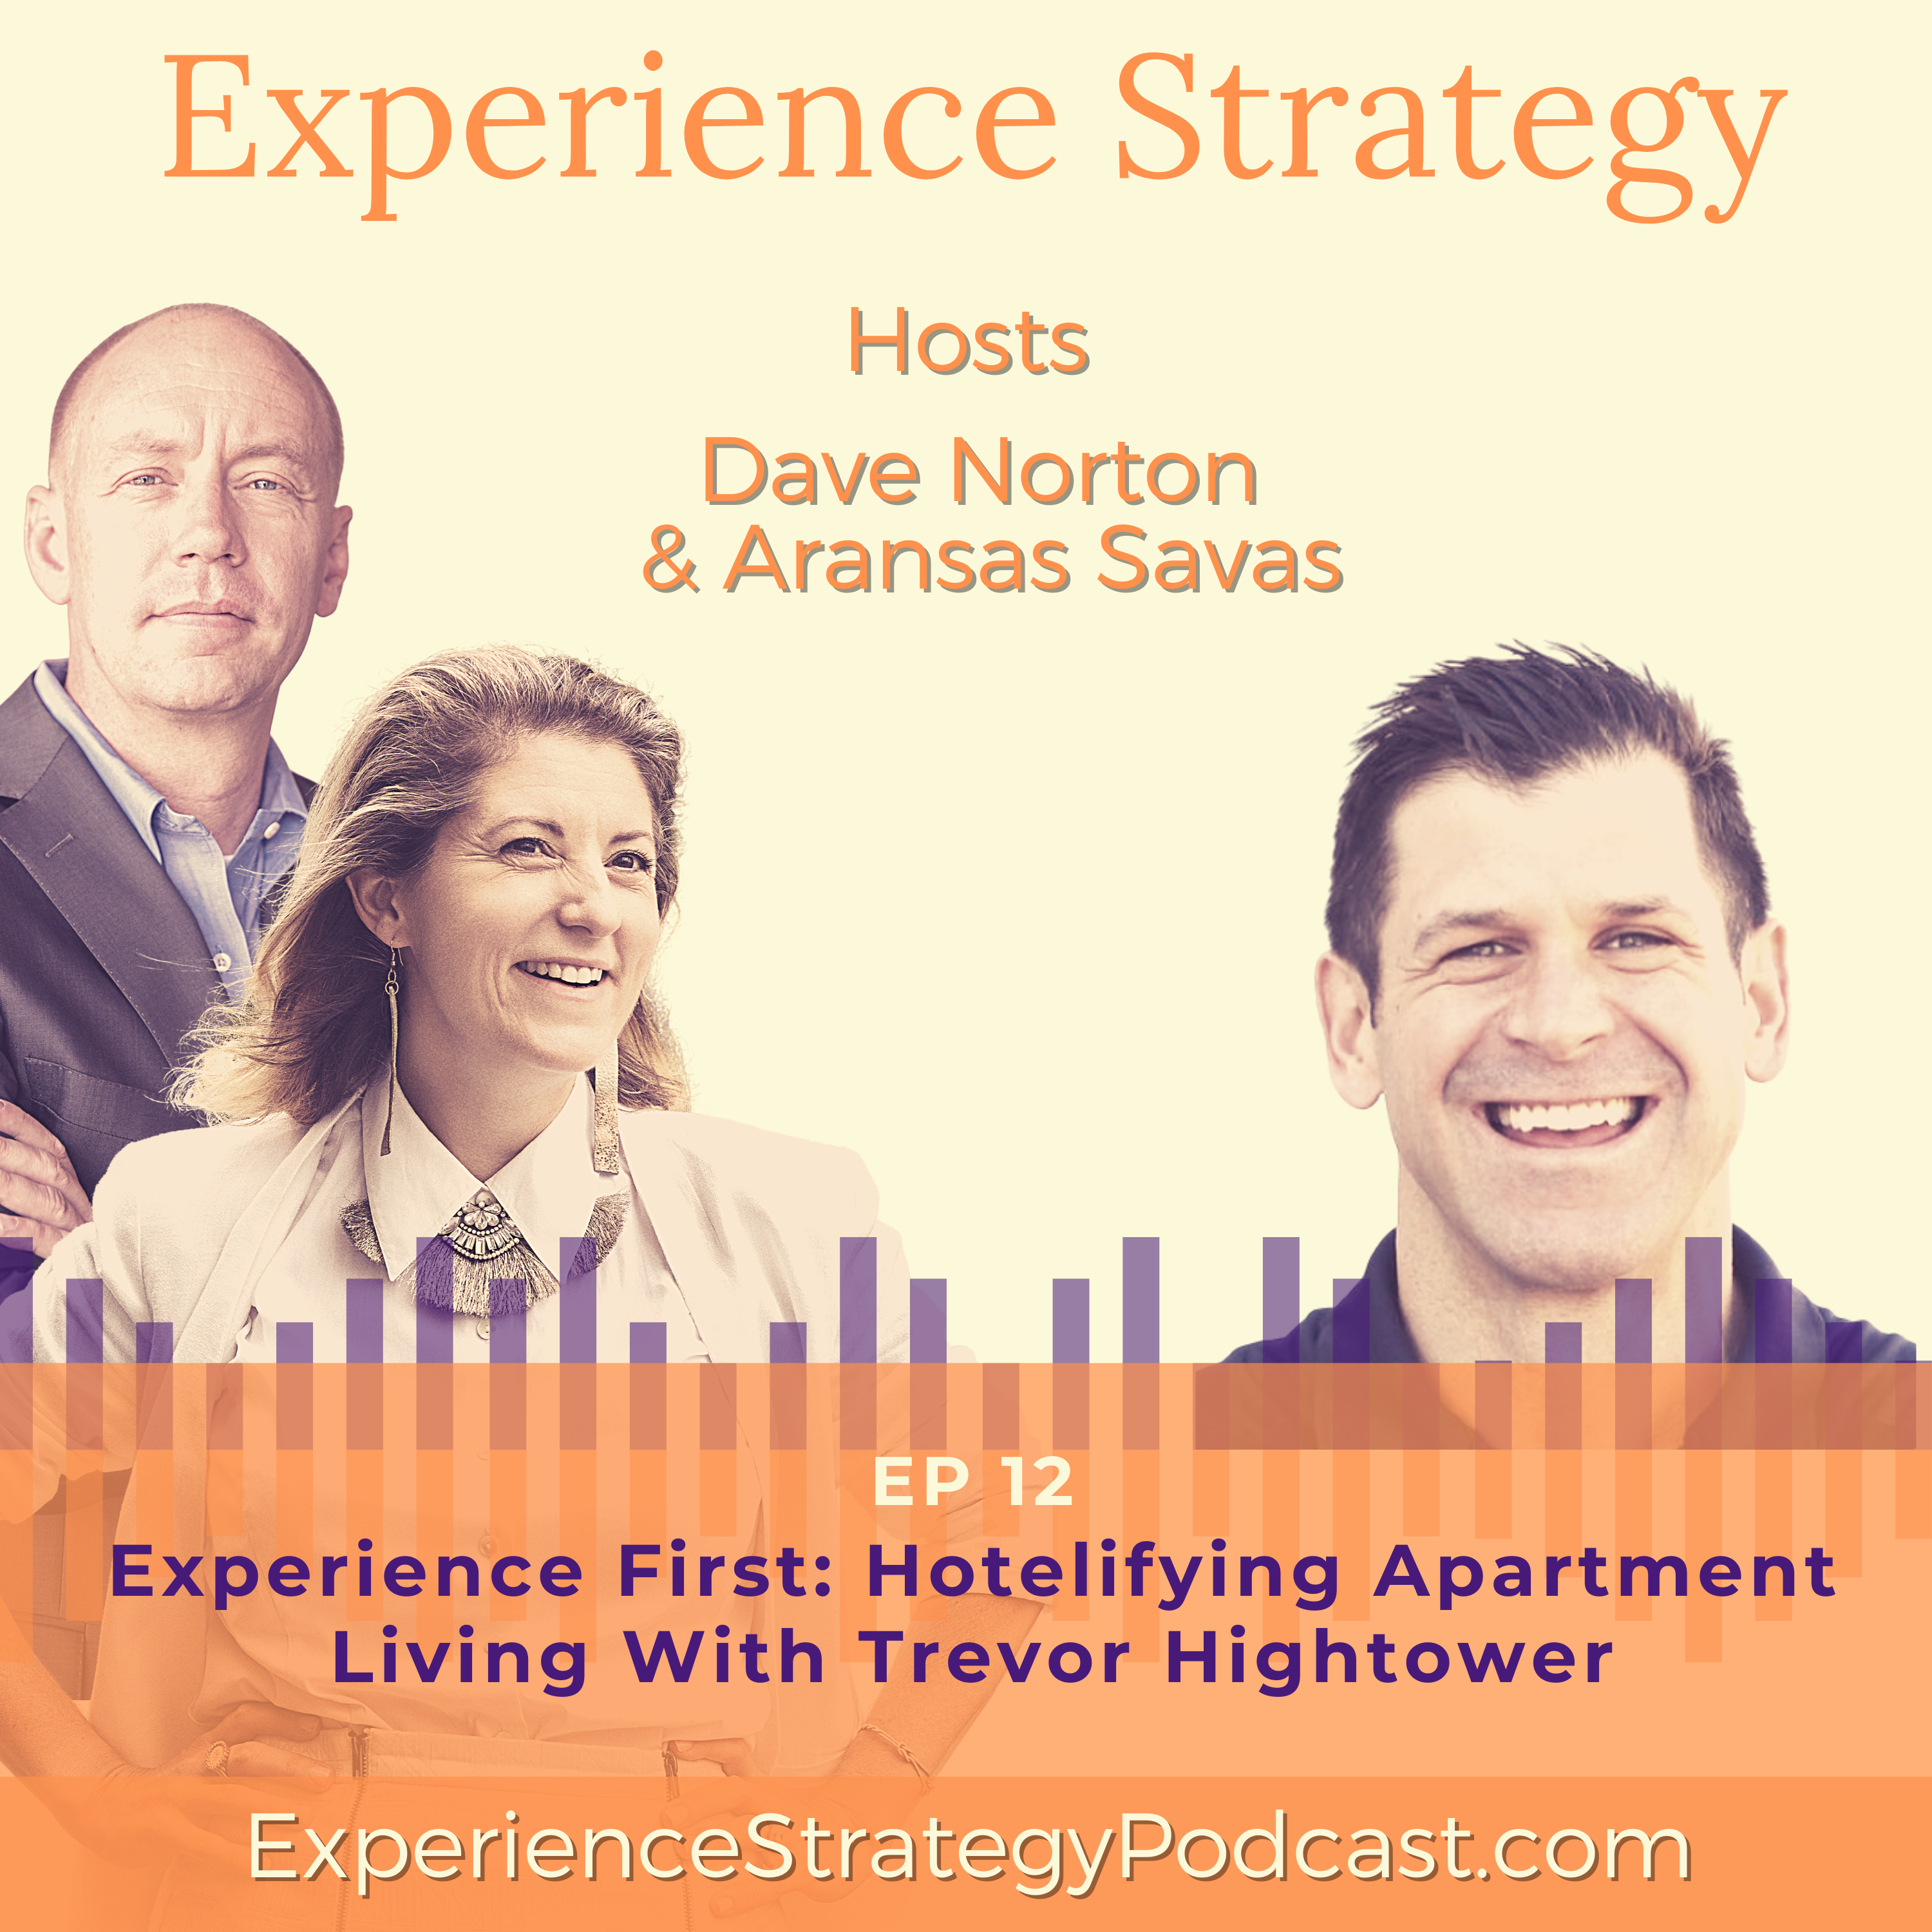 Experience First: Hotelifying Apartment Living